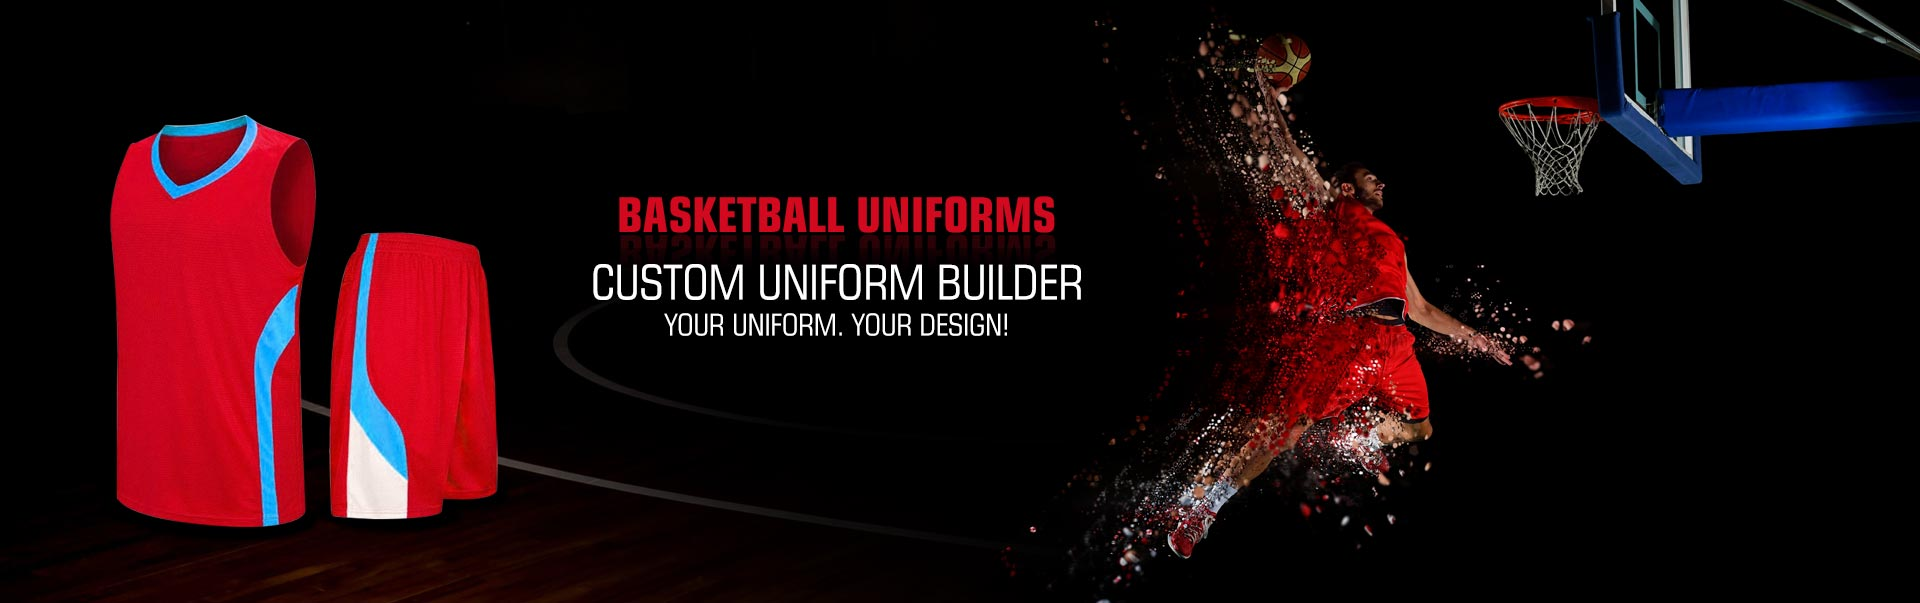 Basketball Uniforms Wholesaler, Suppliers in Limoges